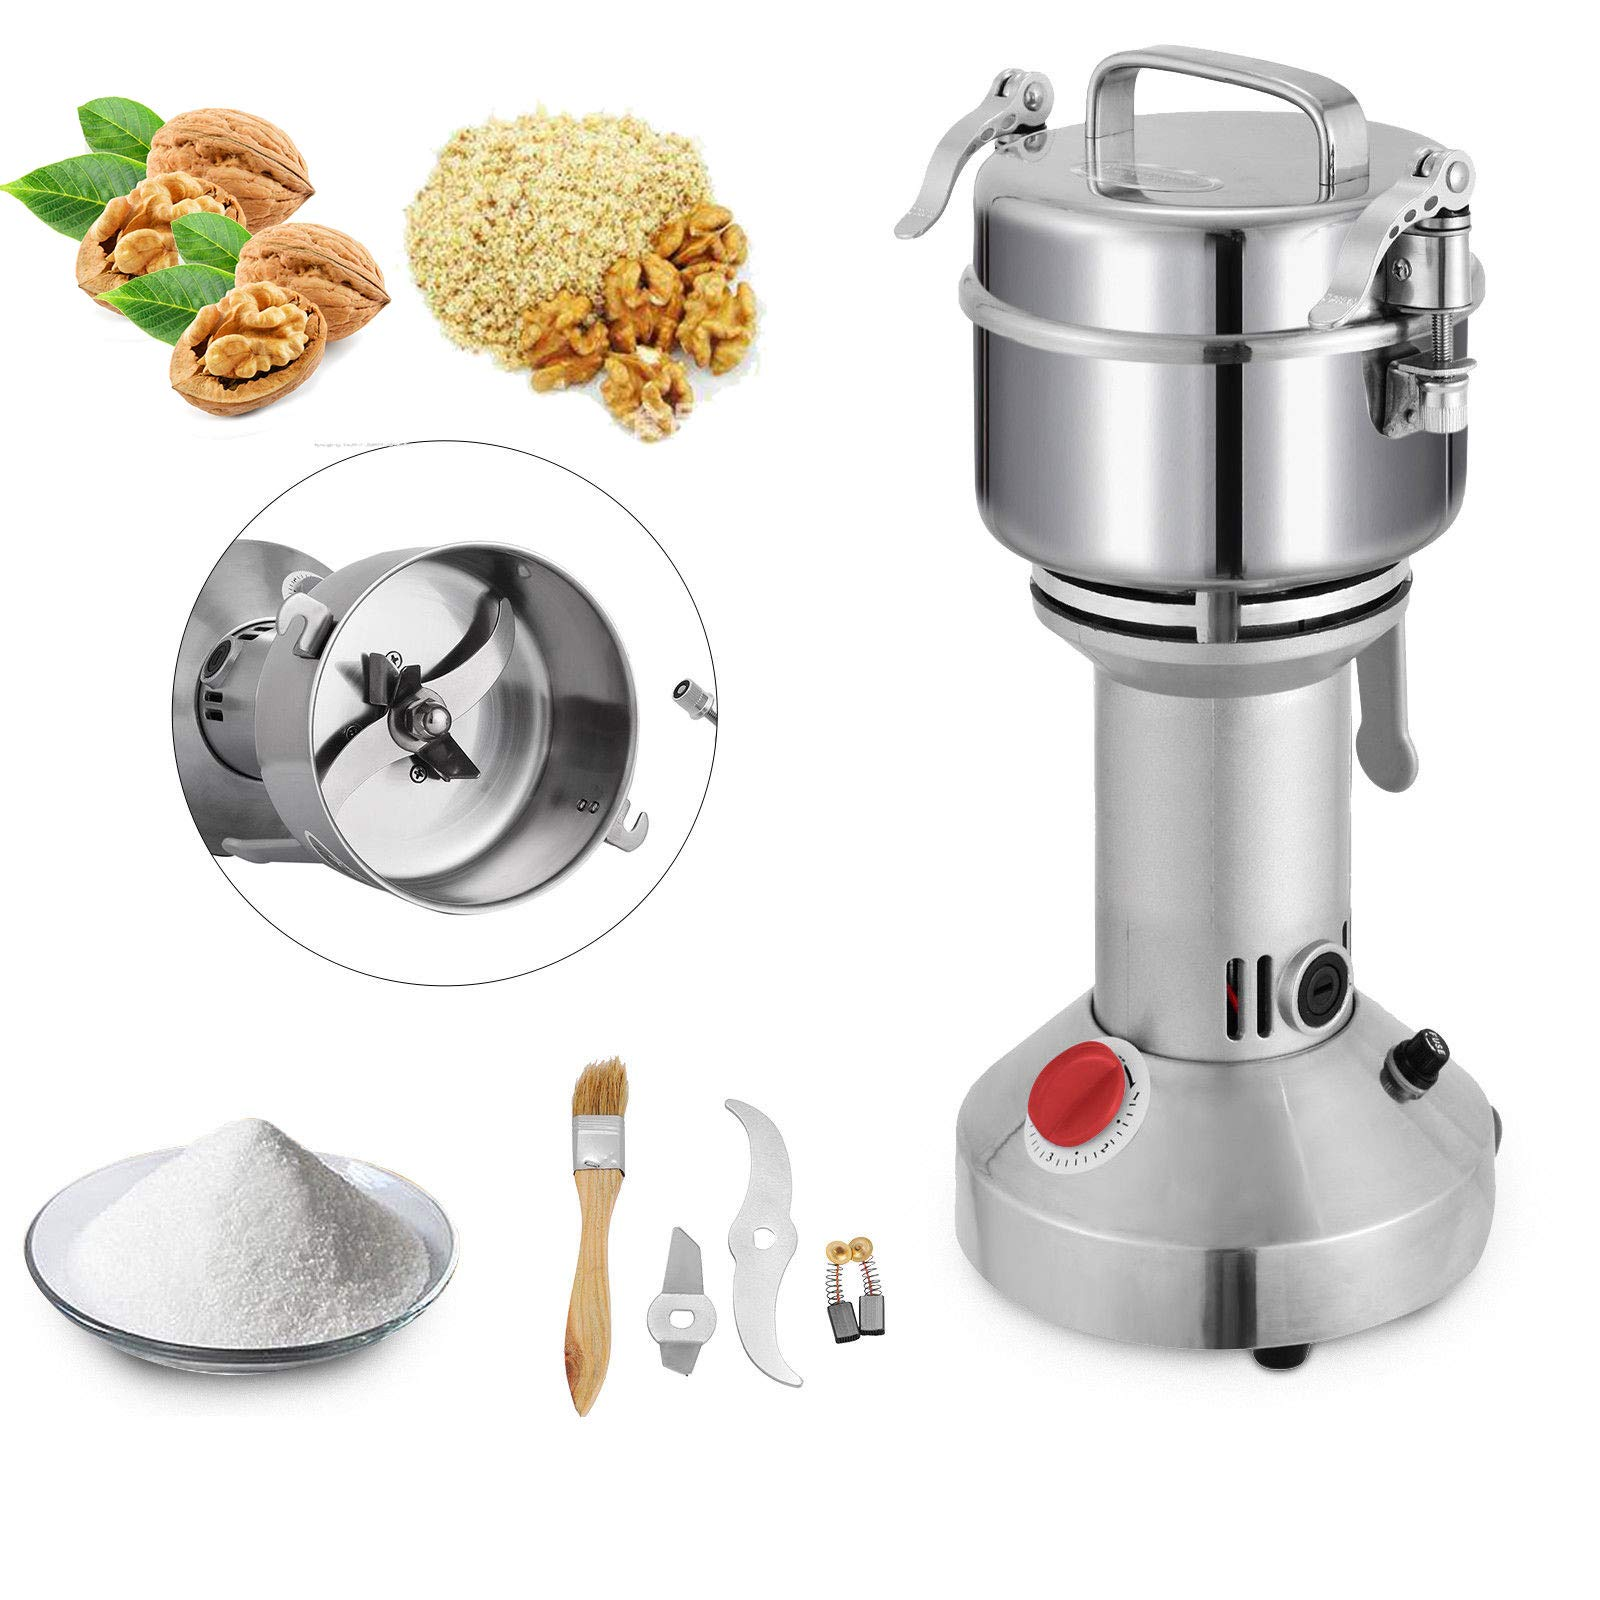 Mophorn 350g Electric Grain Mill Grinder Powder Machine 1600W 50-300 Mesh Food Grade 25000RPM Stainless Steel for Kitchen Herb Spice Pepper Coffee by Mophorn